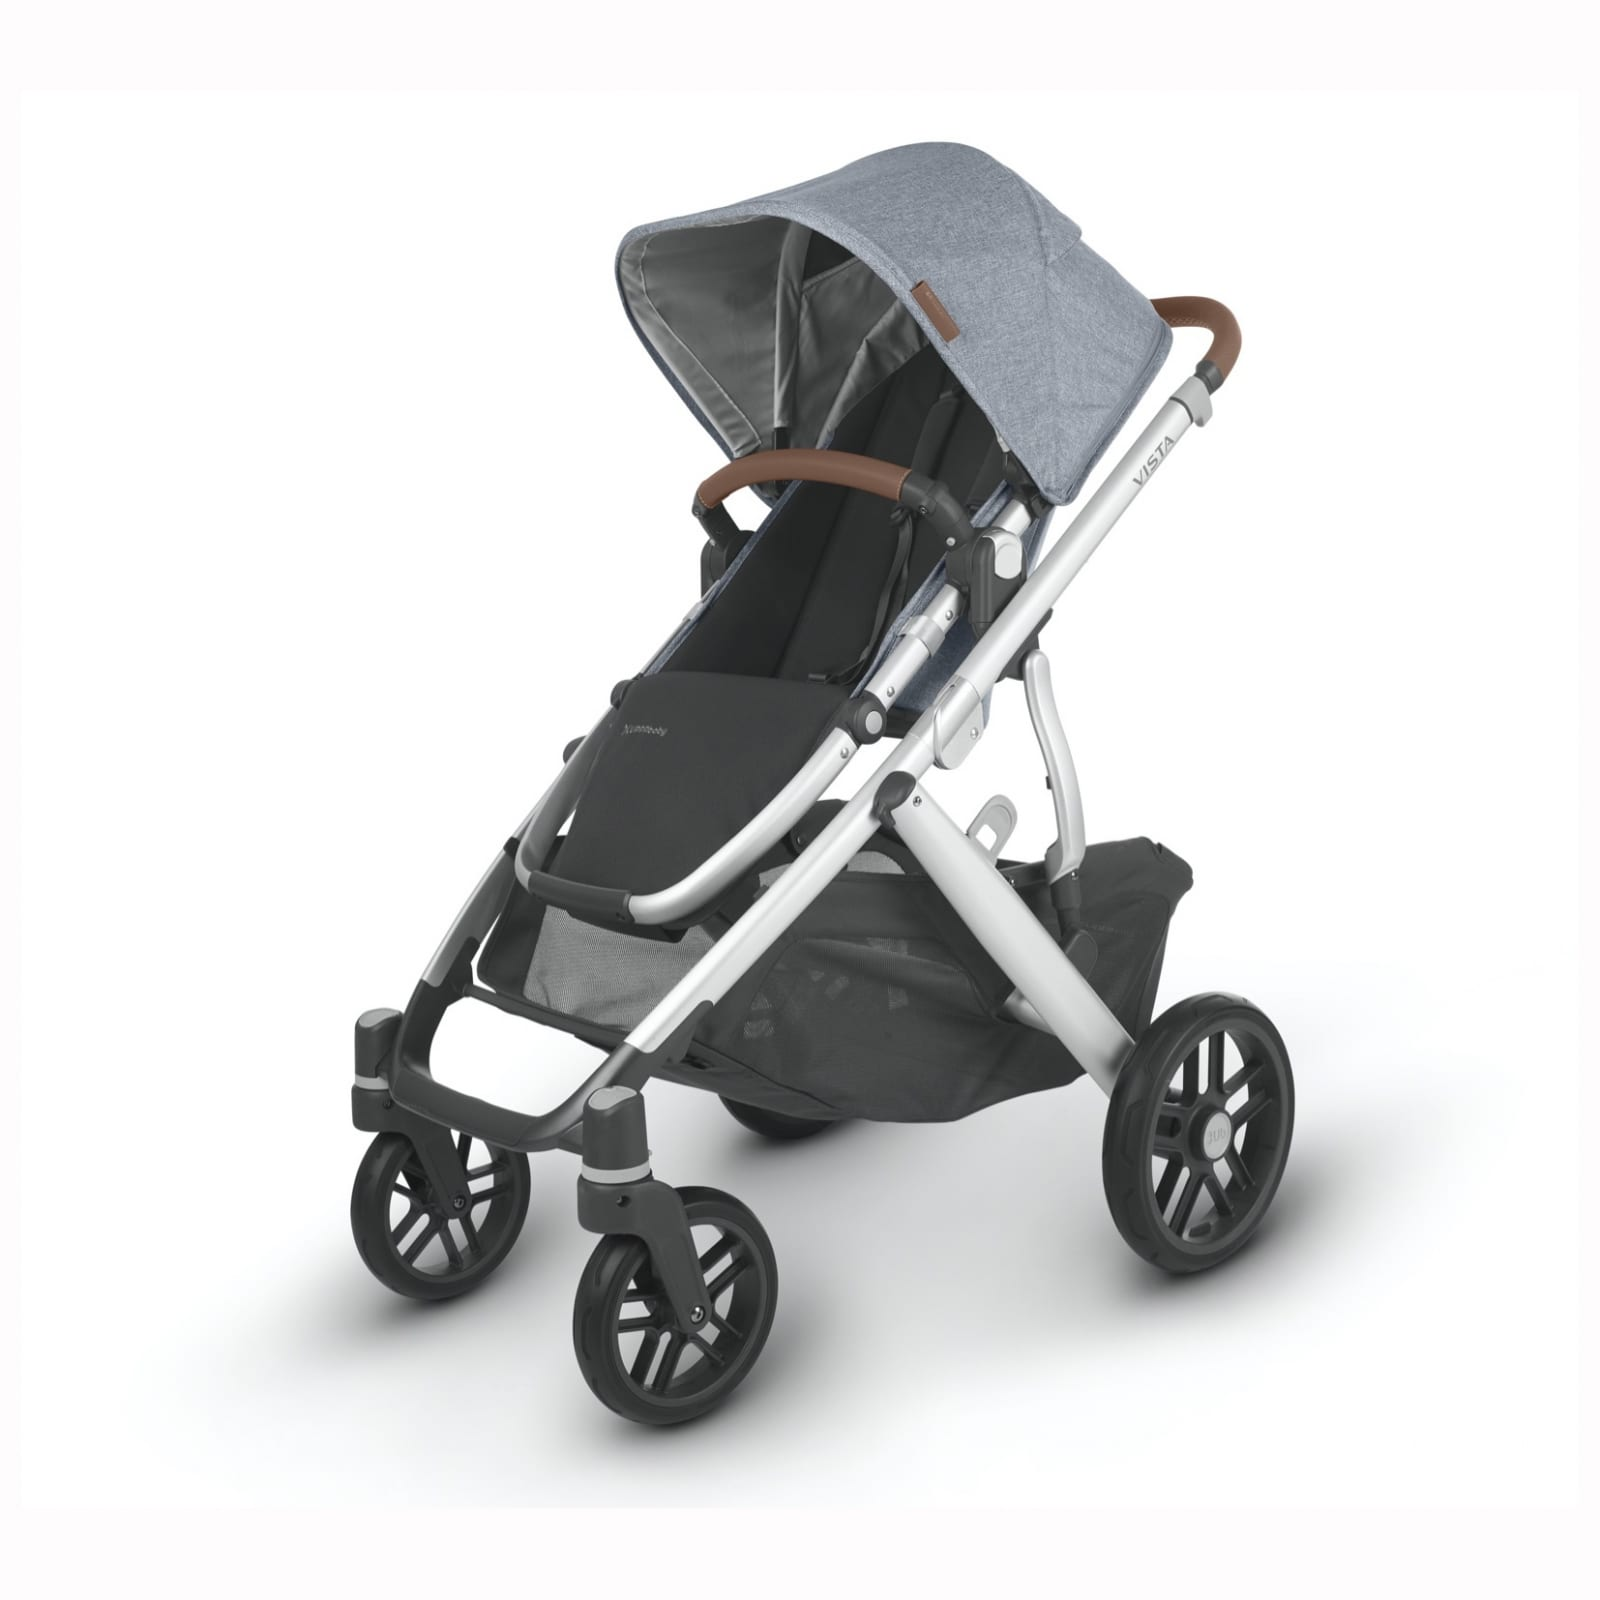 UPPABaby VISTA 2 Stroller & Carry Cot  – GREGORY product image